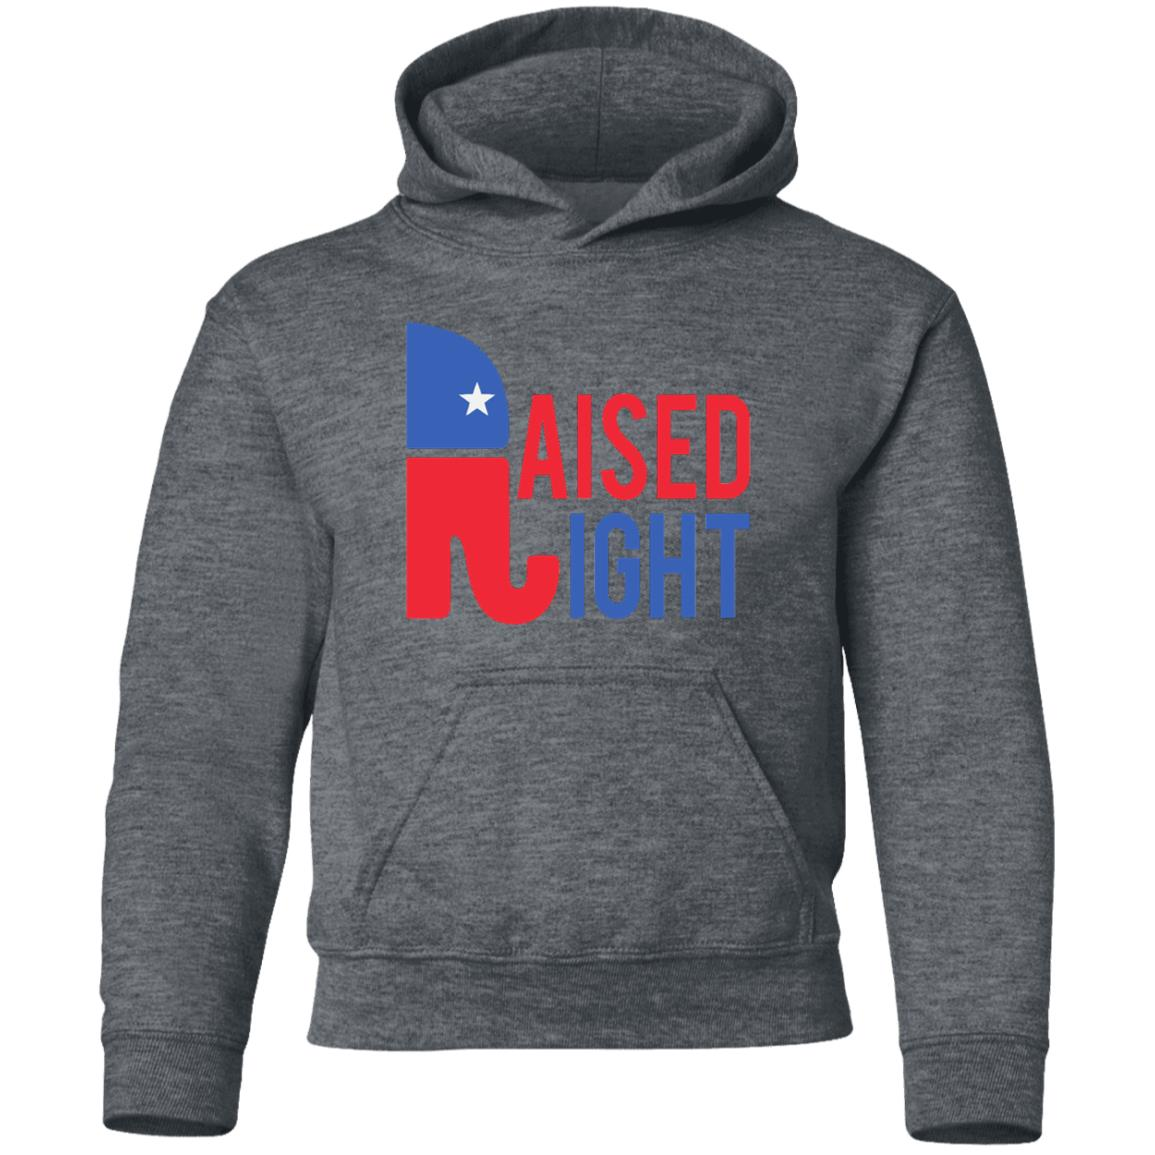 Raised Right Youth Hoodie